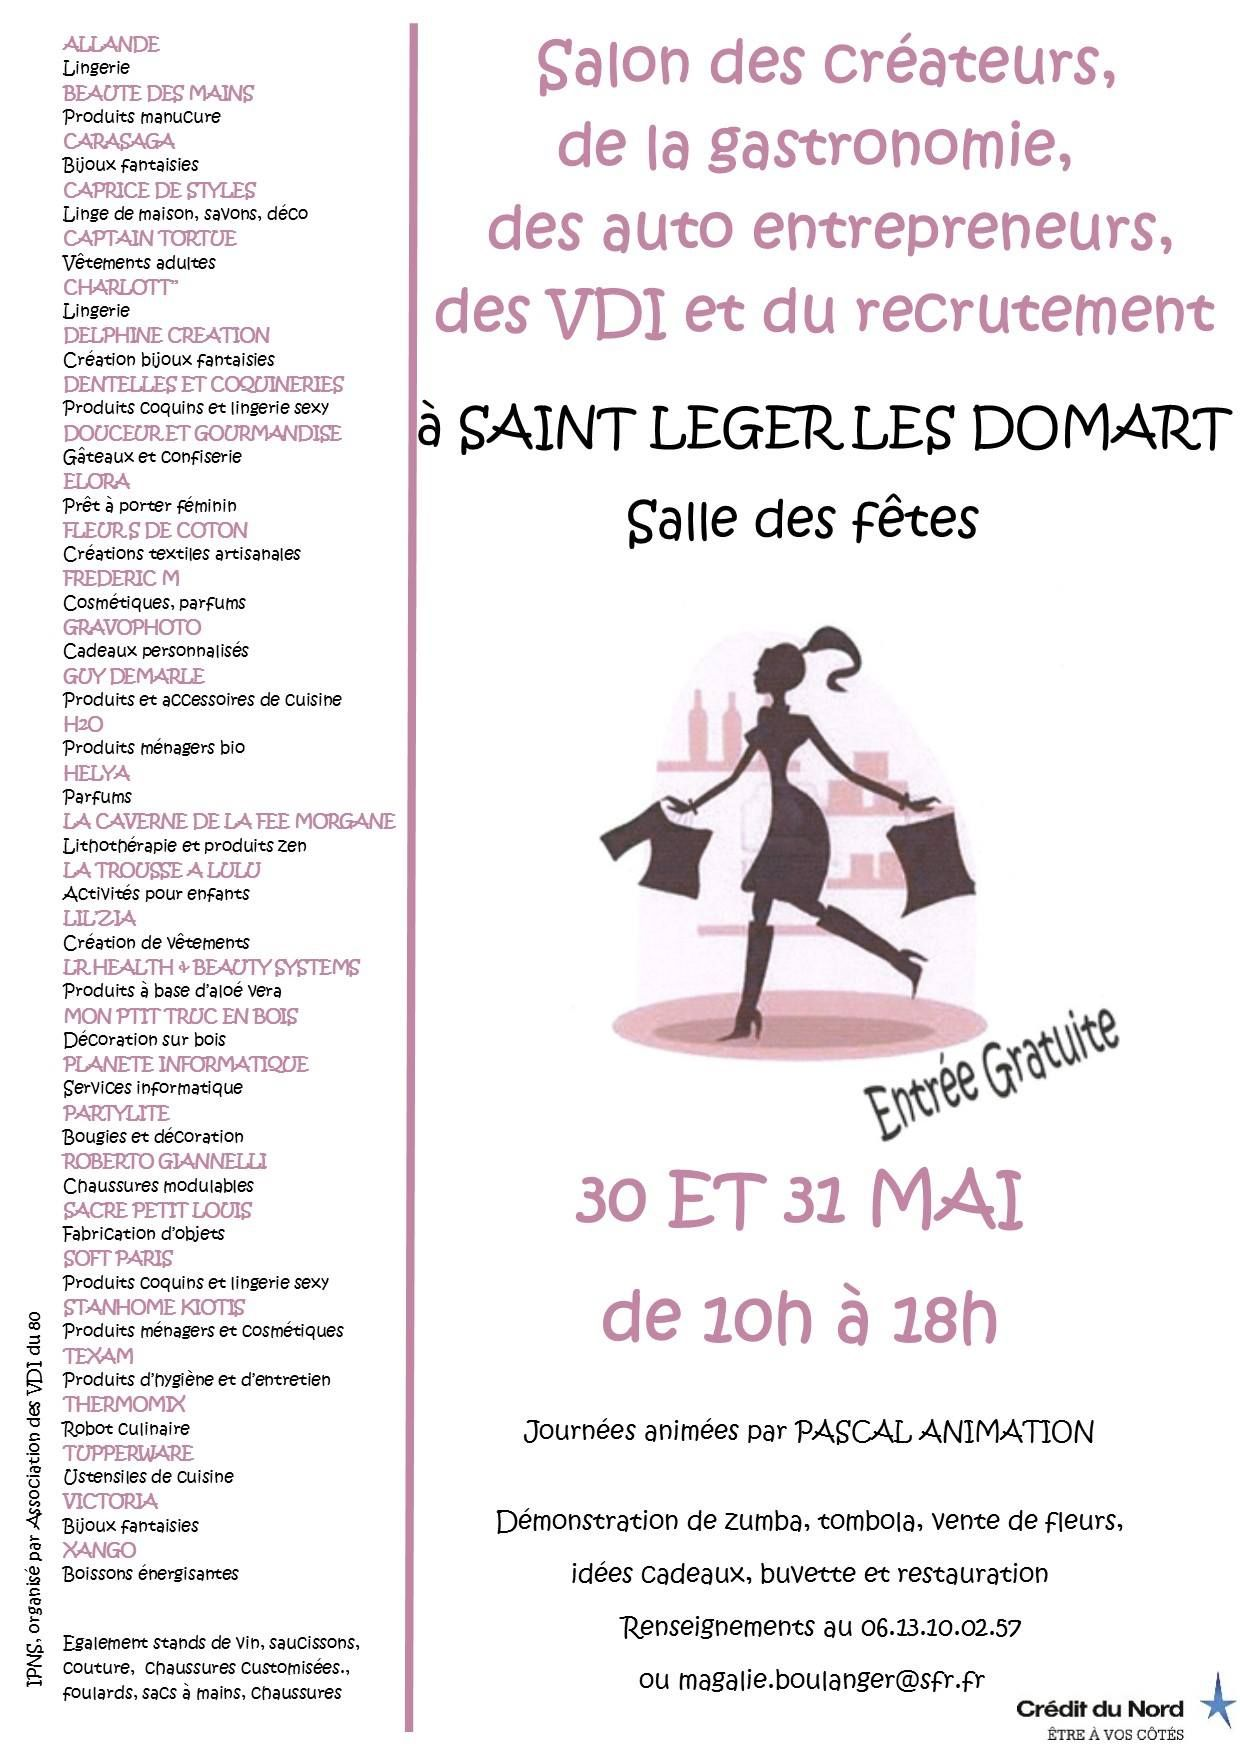 emploi vdi chaussures